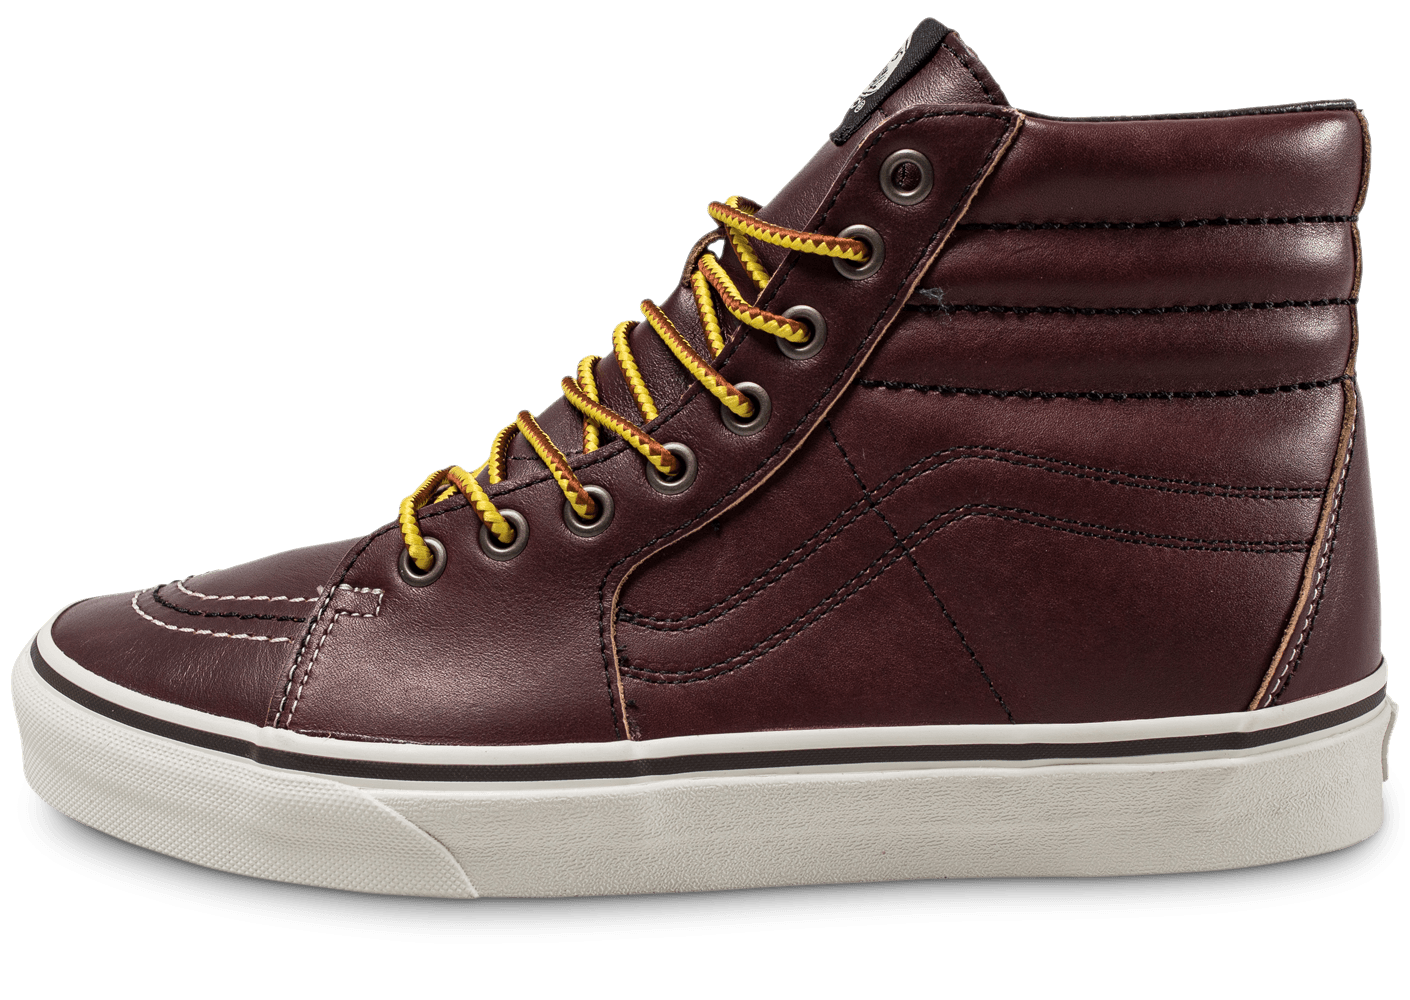 vans sk8 hi marron chaussures baskets homme chausport. Black Bedroom Furniture Sets. Home Design Ideas